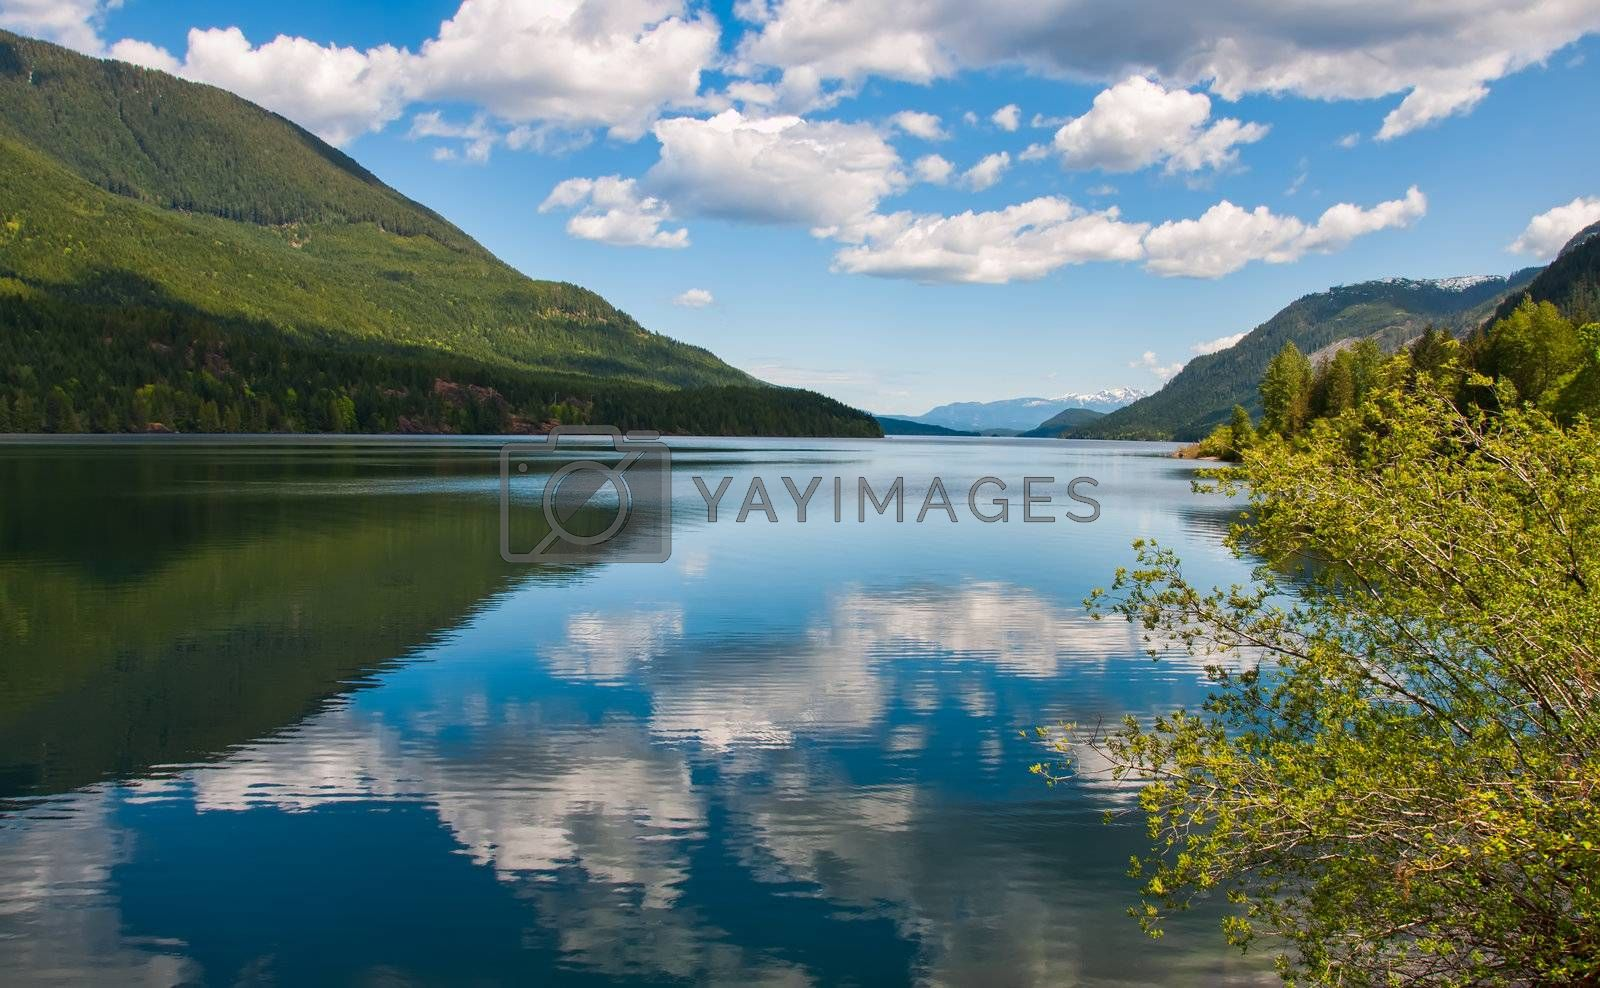 Fluffy clouds reflected in a tranquil lake with mountains in distance